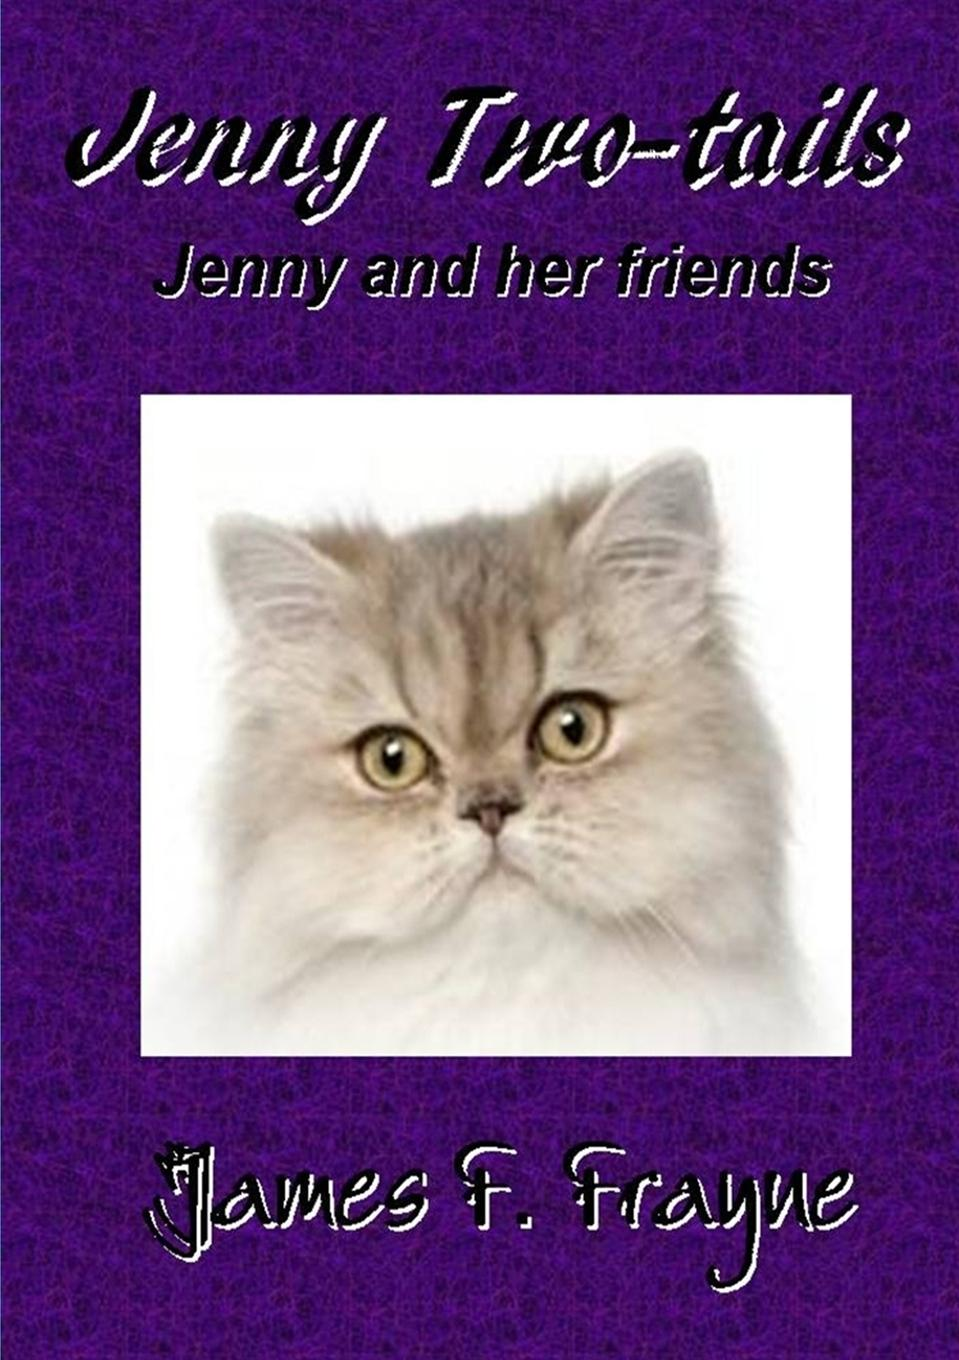 James F Frayne Jenny Two-tails and her Special Friends stables gordon shireen and her friends pages from the life of a persian cat